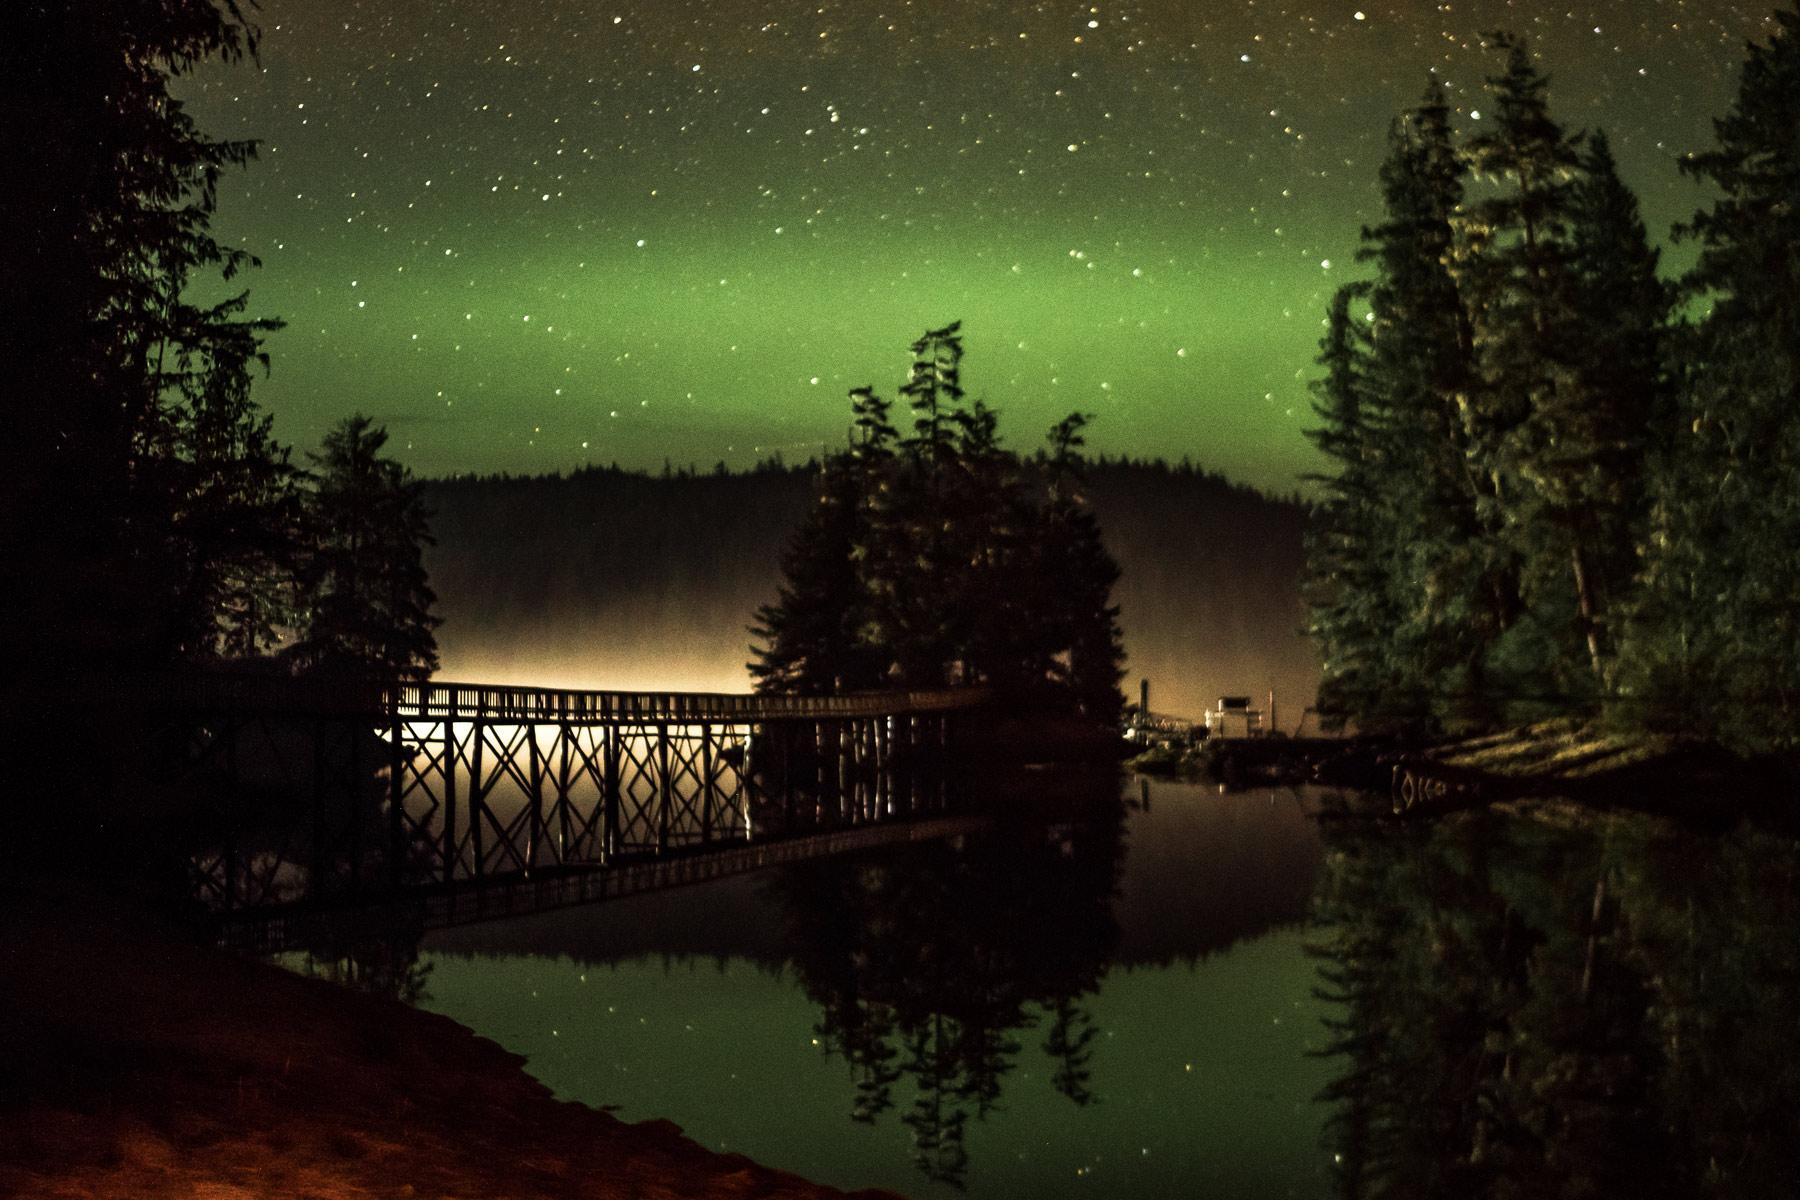 Night sky reveals an amazing aurora over the boardwalk